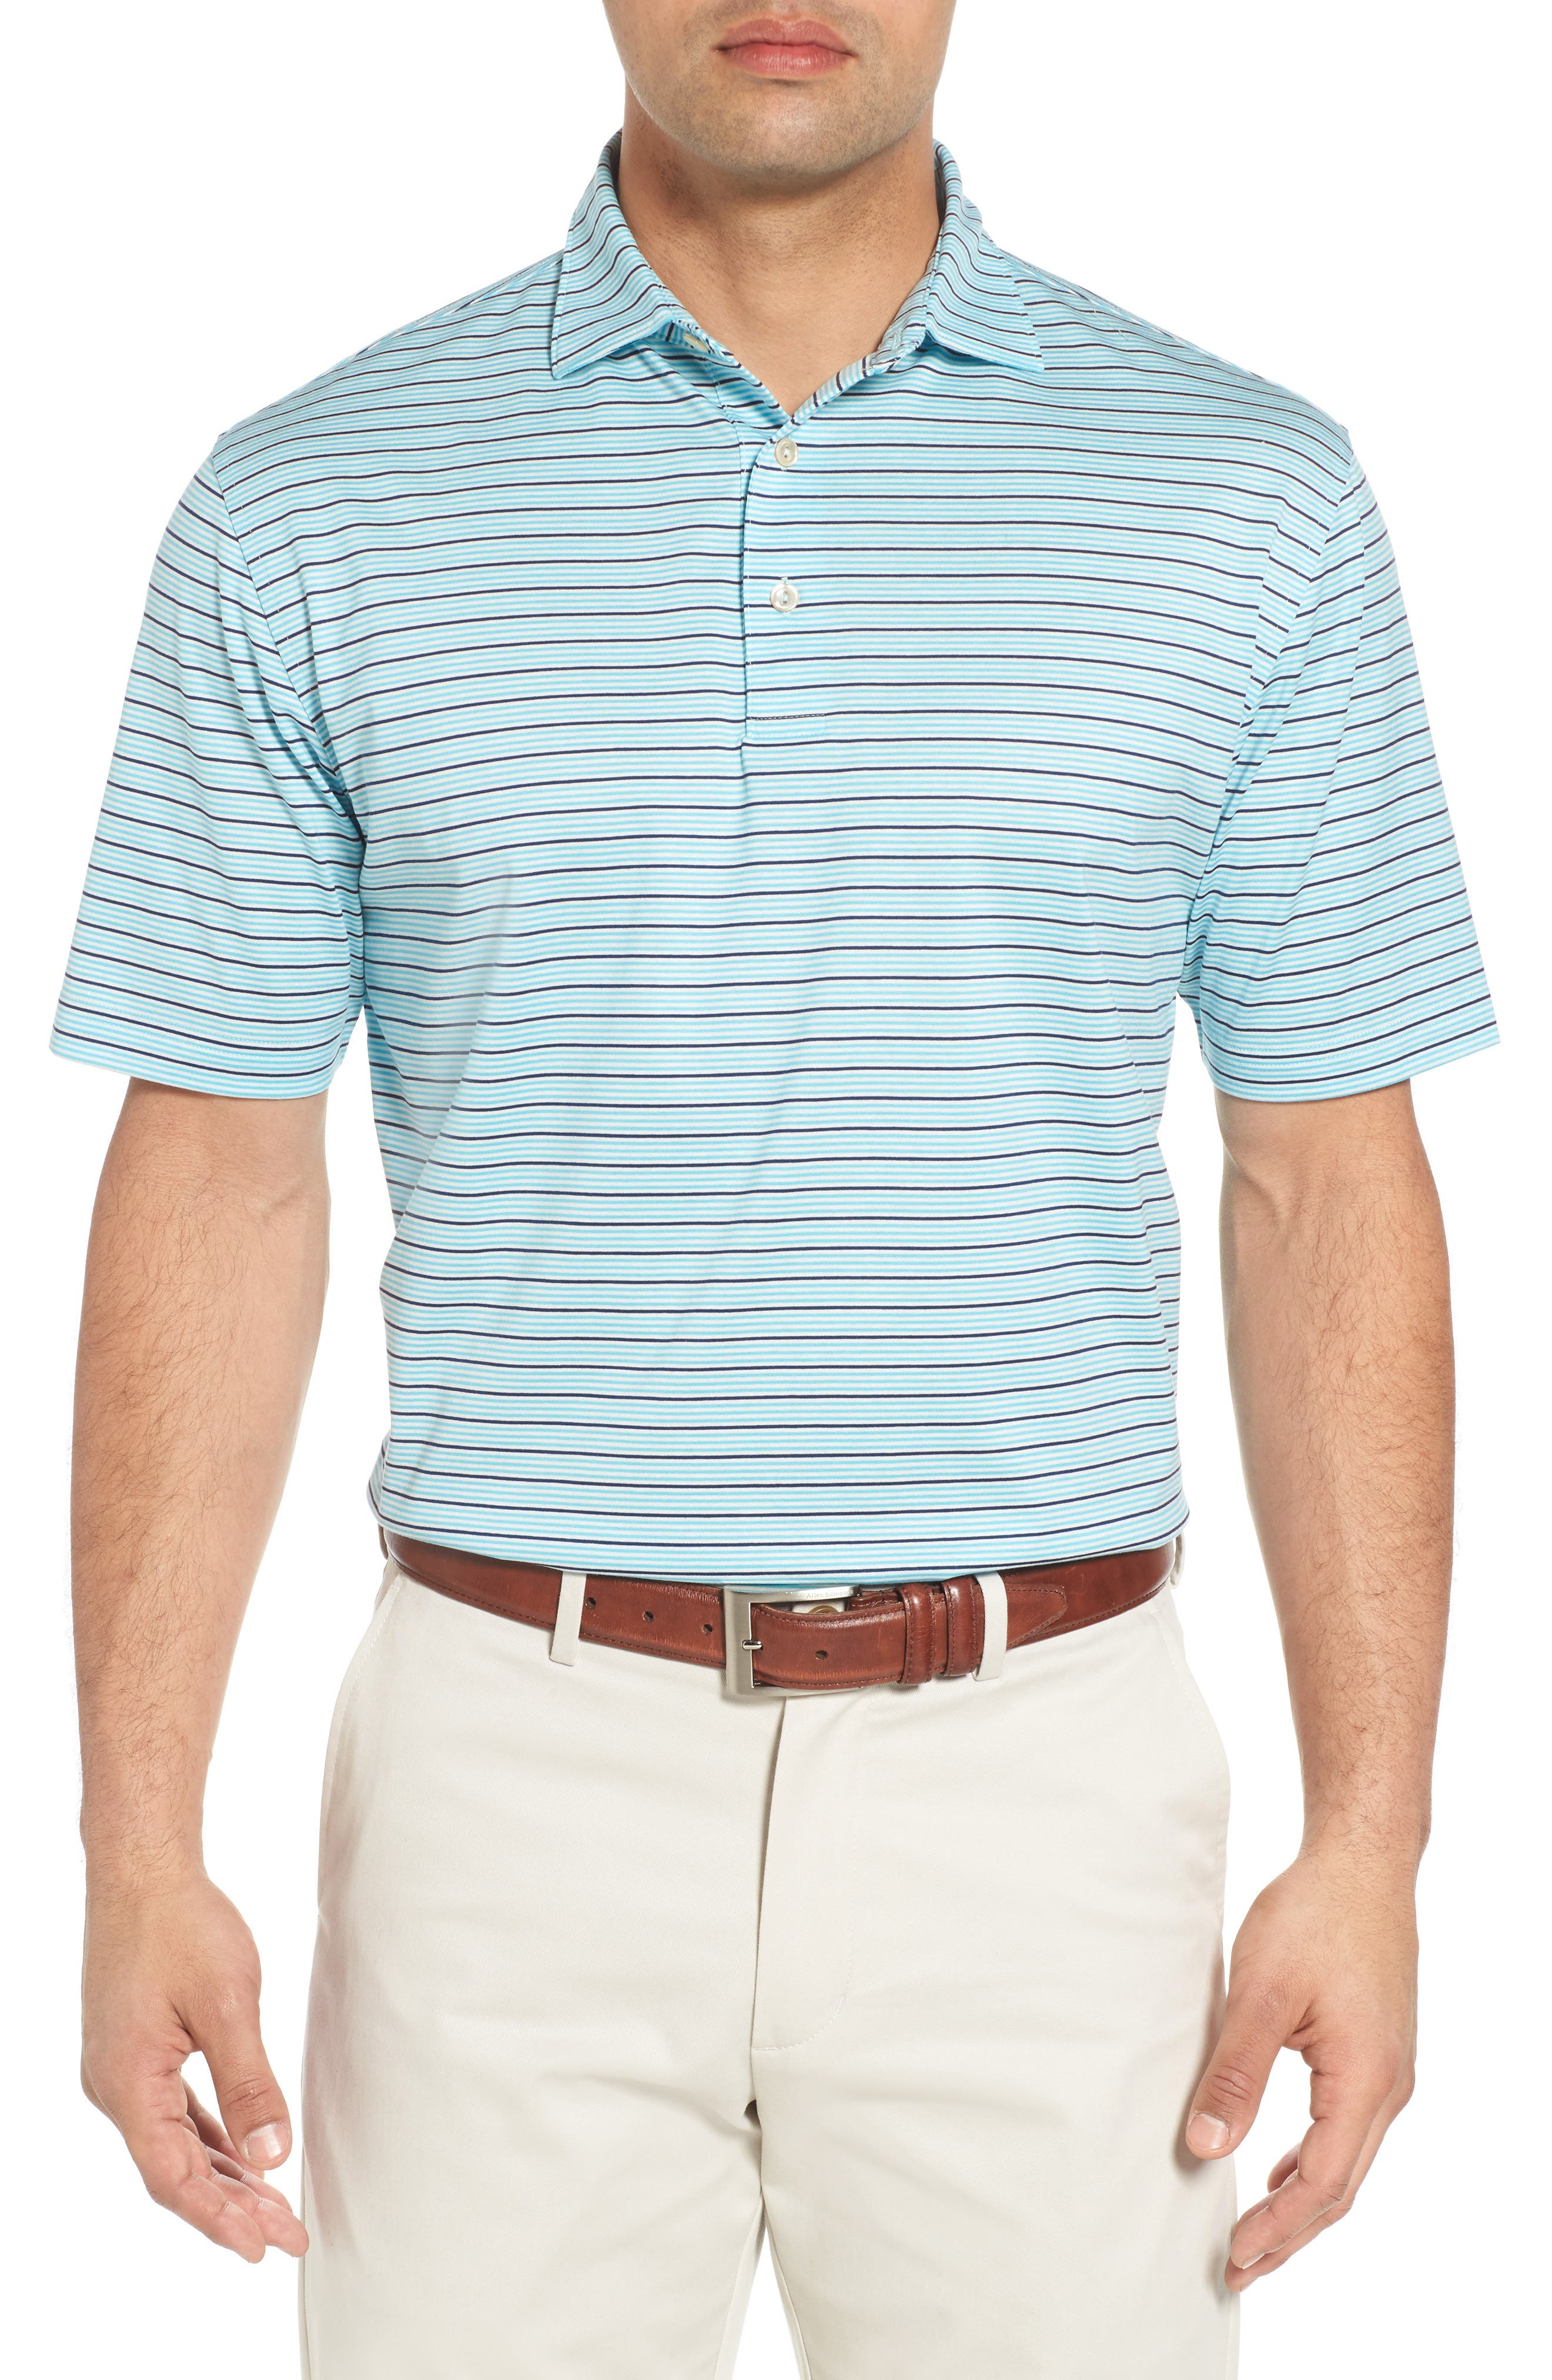 Main Image - Peter Millar Grandview Sean Stripe Nanoluxe Polo